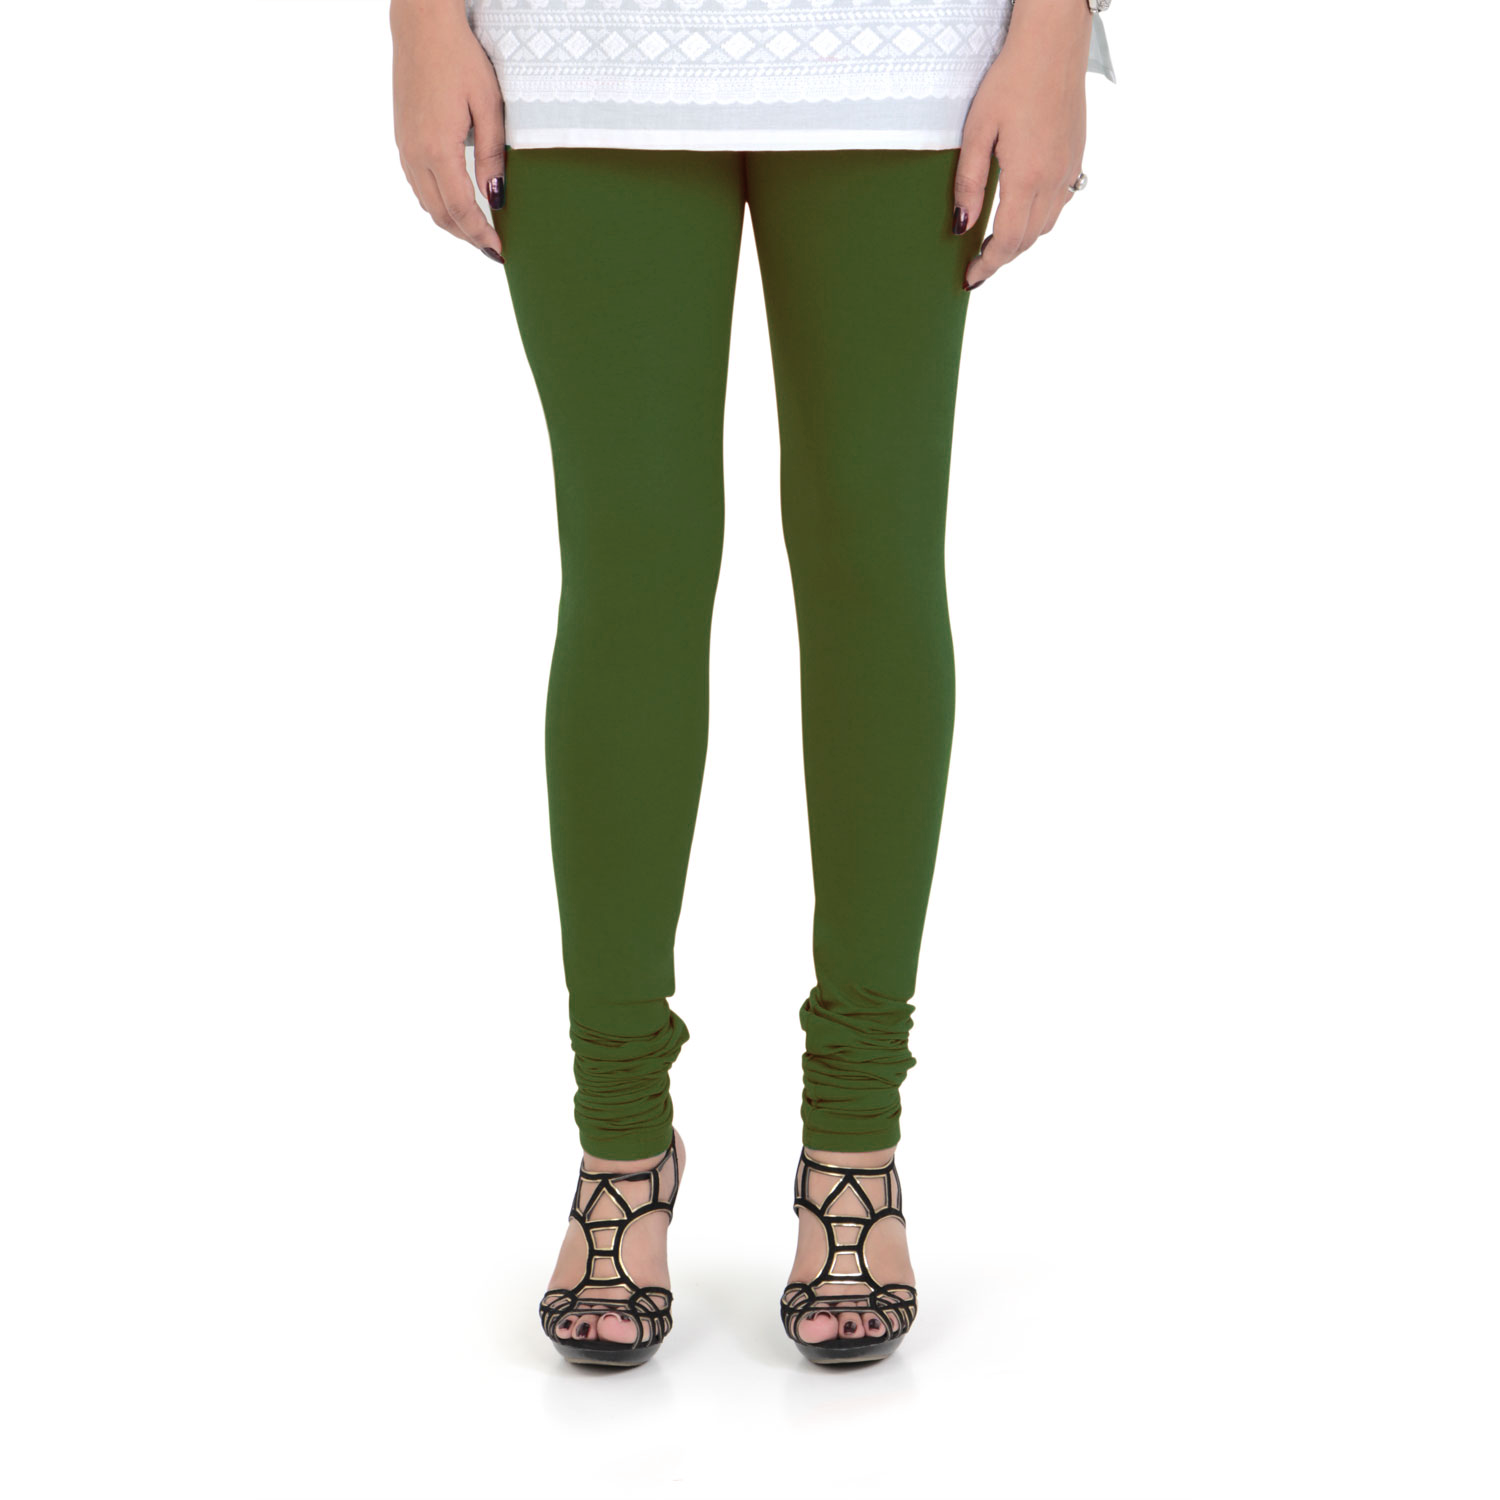 Vami Women's Cotton Stretchable Churidar Legging - Perry Green